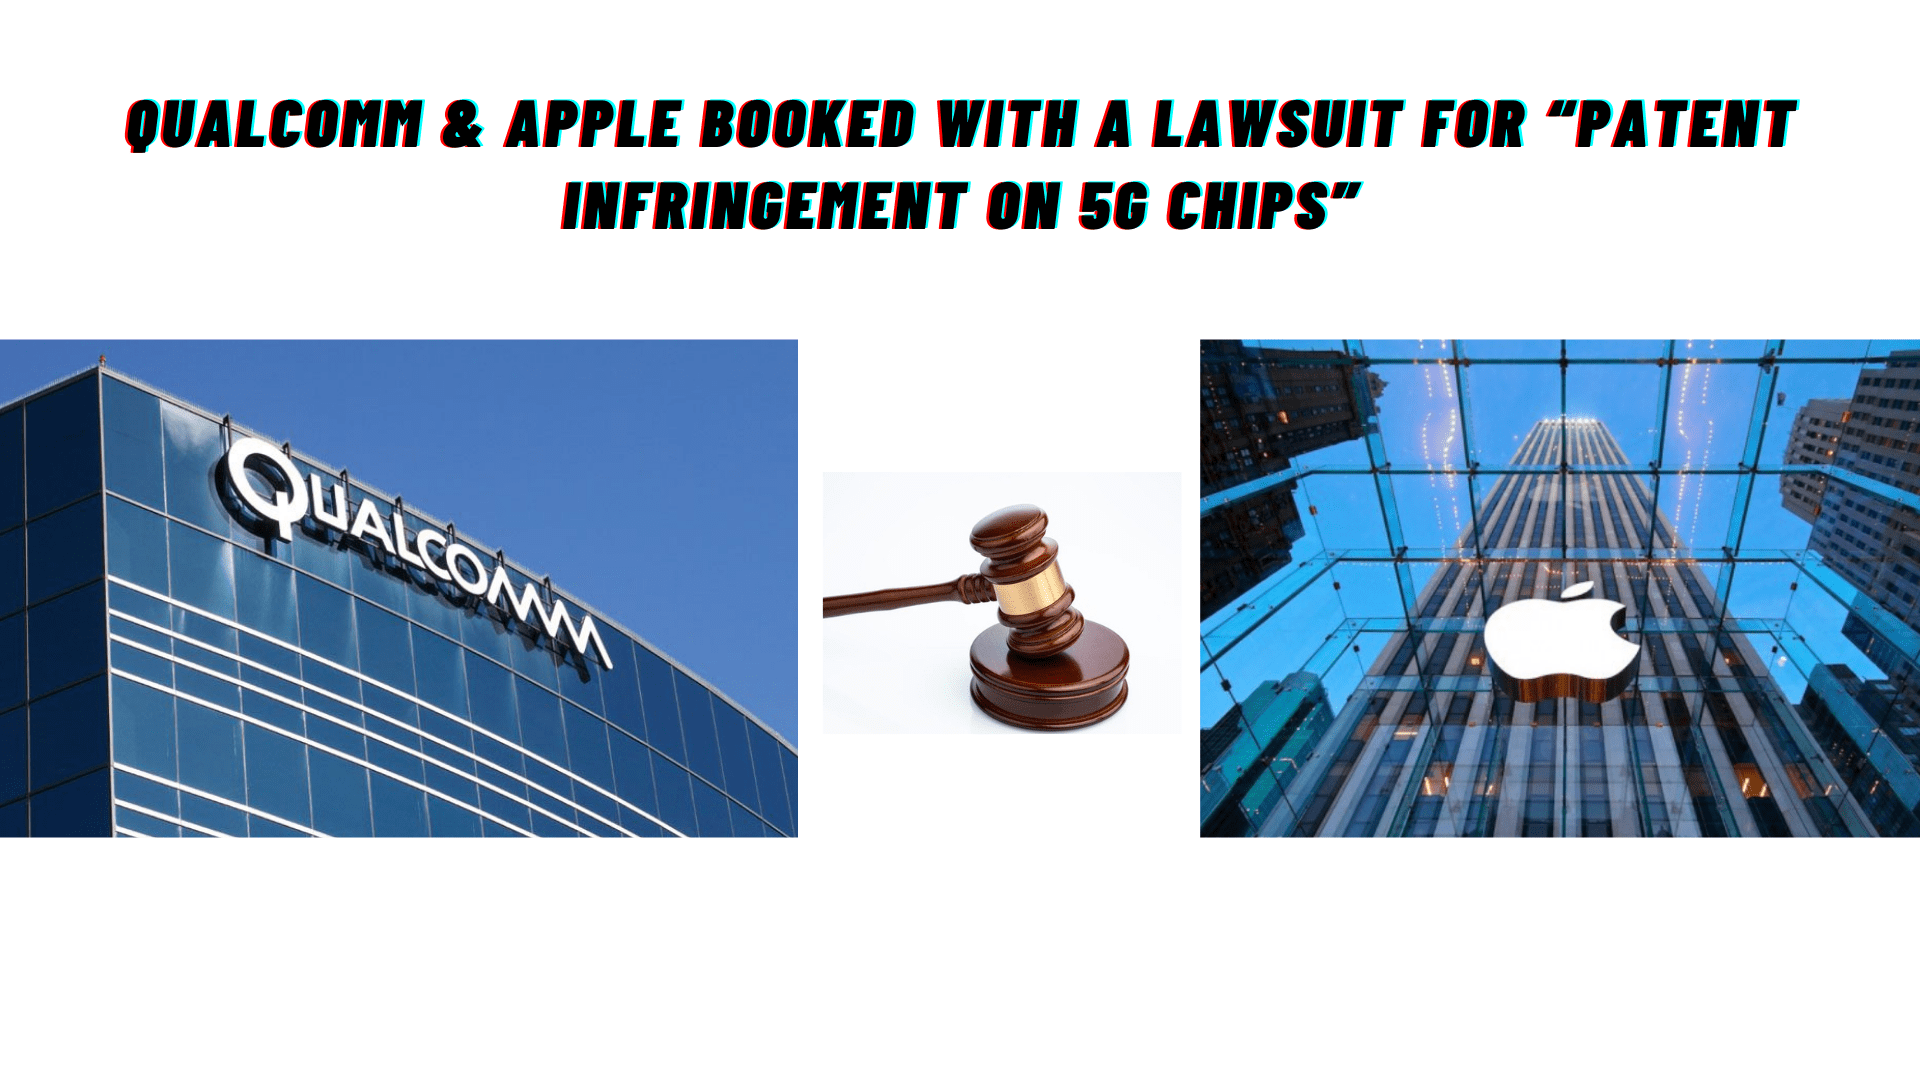 """Apple & Qualcomm Booked For Lawsuit Over """"Patent Infringement On 5G Chips"""""""